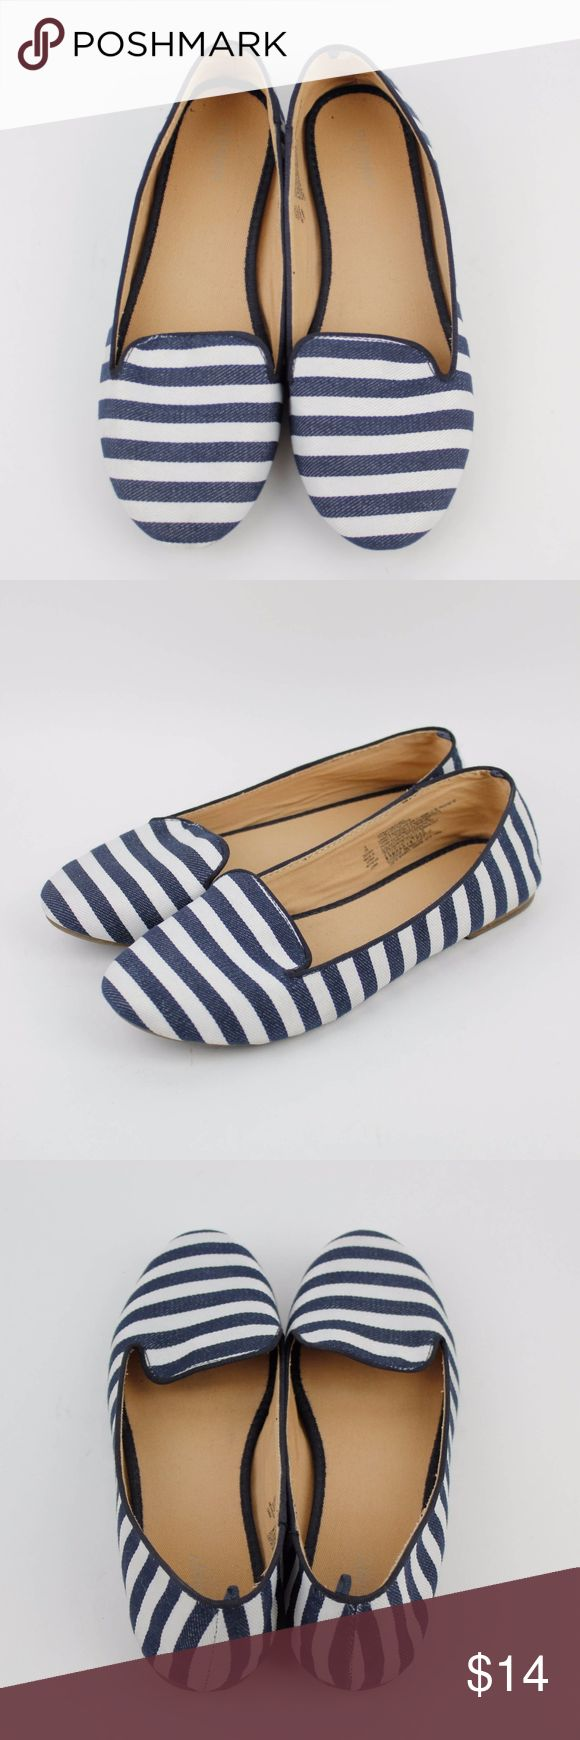 Blue White Striped Nautical Ballet Flats Shoe Sz 9 Old Navy White Blue Striped Nautical Ballet Flats  Size: 9  Gently used condition with little signs of wear. Please see photos for details Old Navy Shoes Flats & Loafers